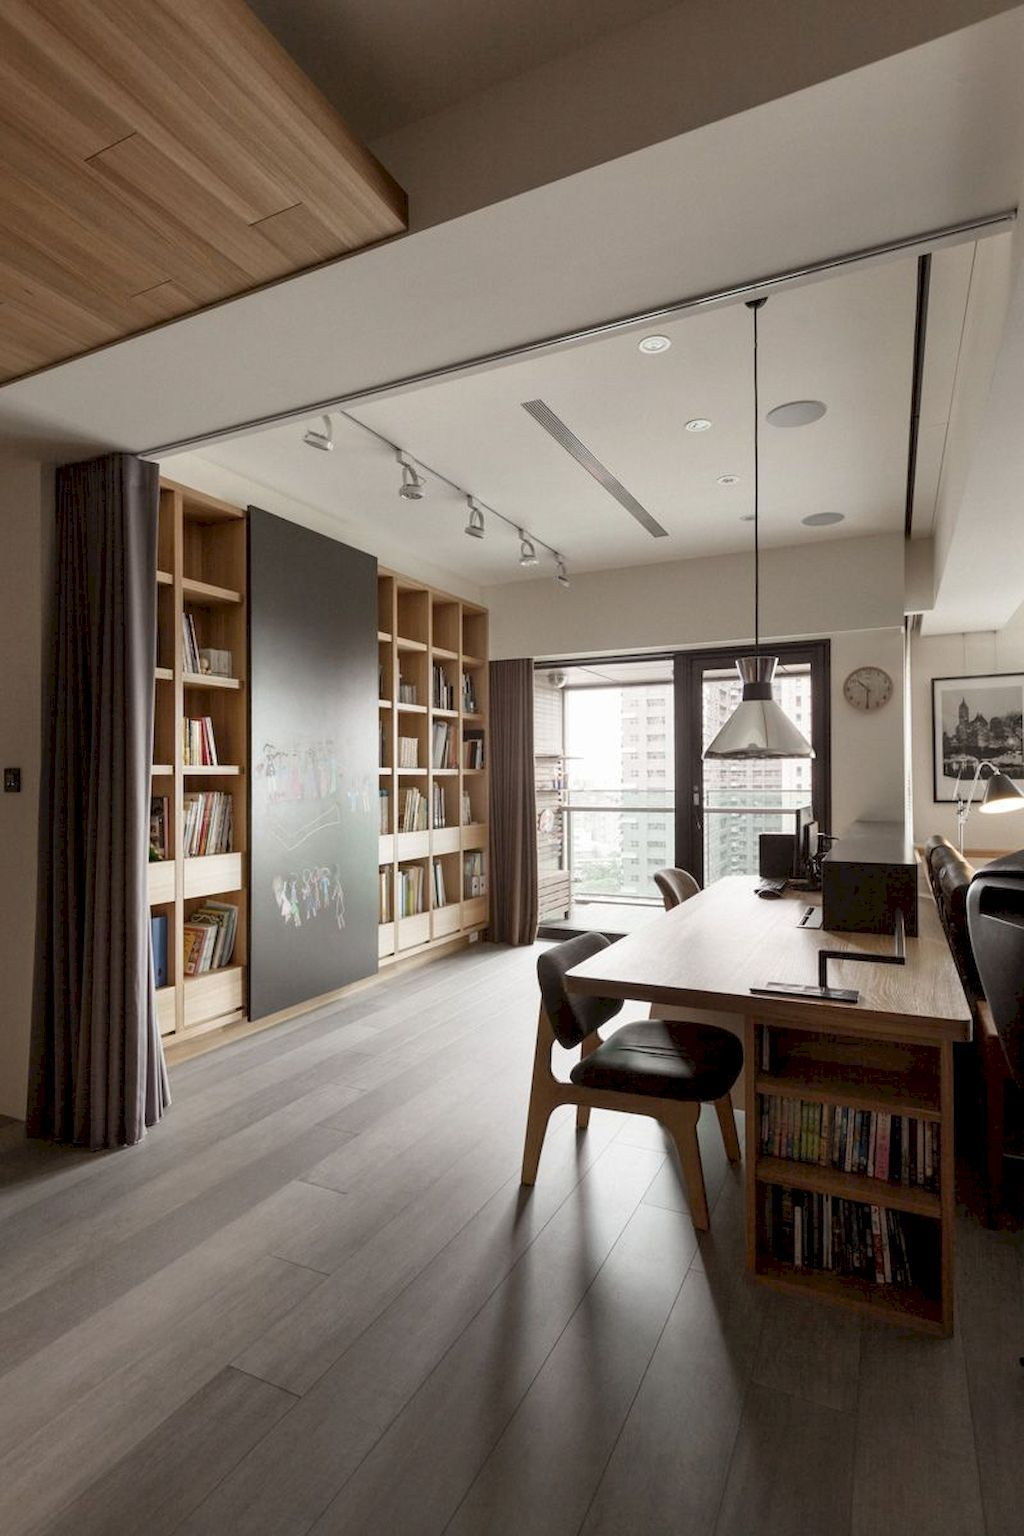 Gorgeous apartment design ideas to your space for a more dynamic room https